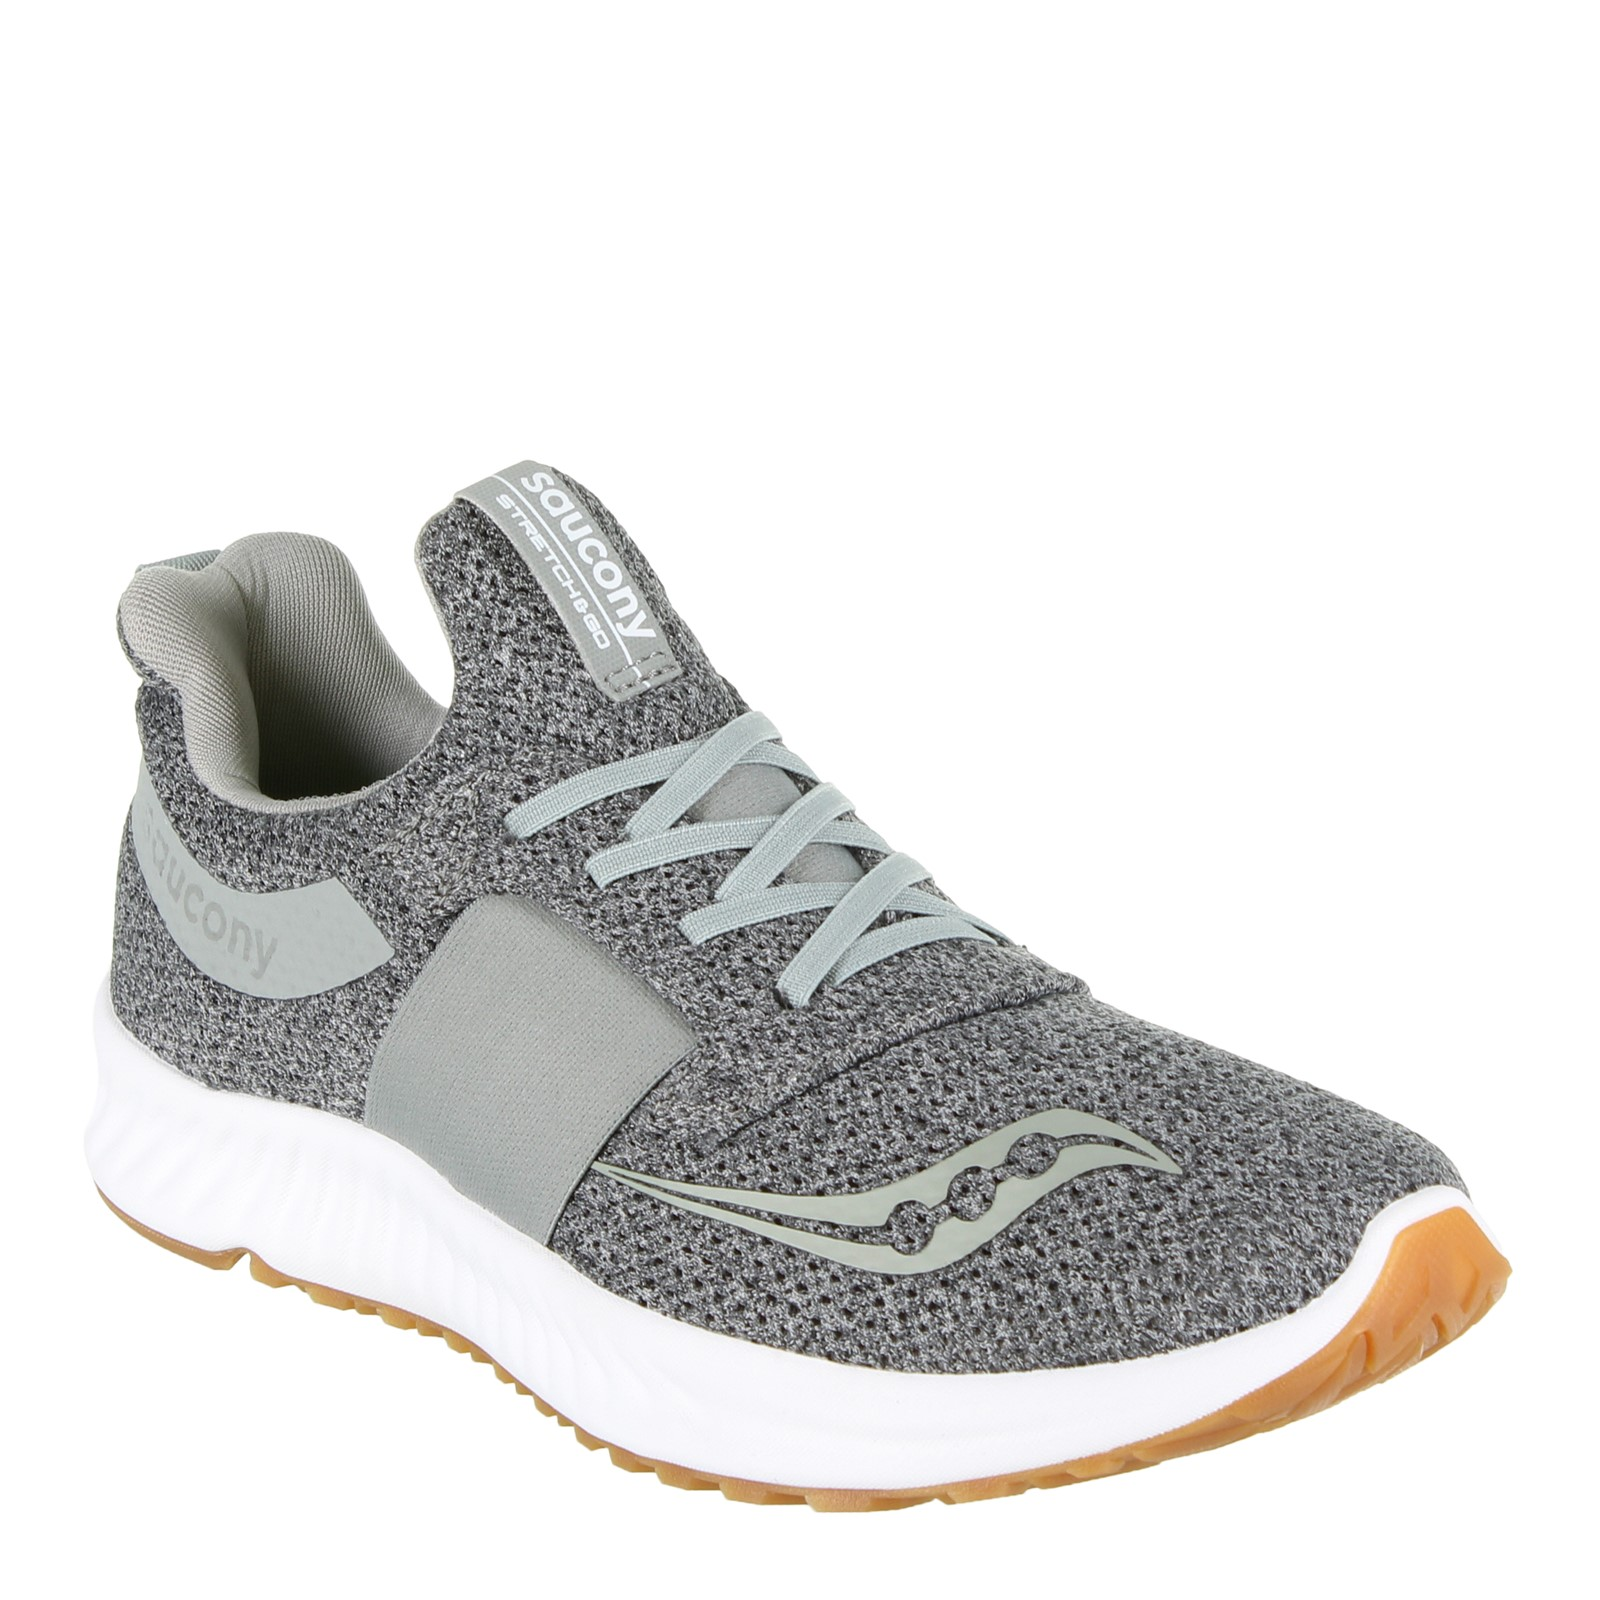 Saucony, Stretch and Go Breeze Sneaker